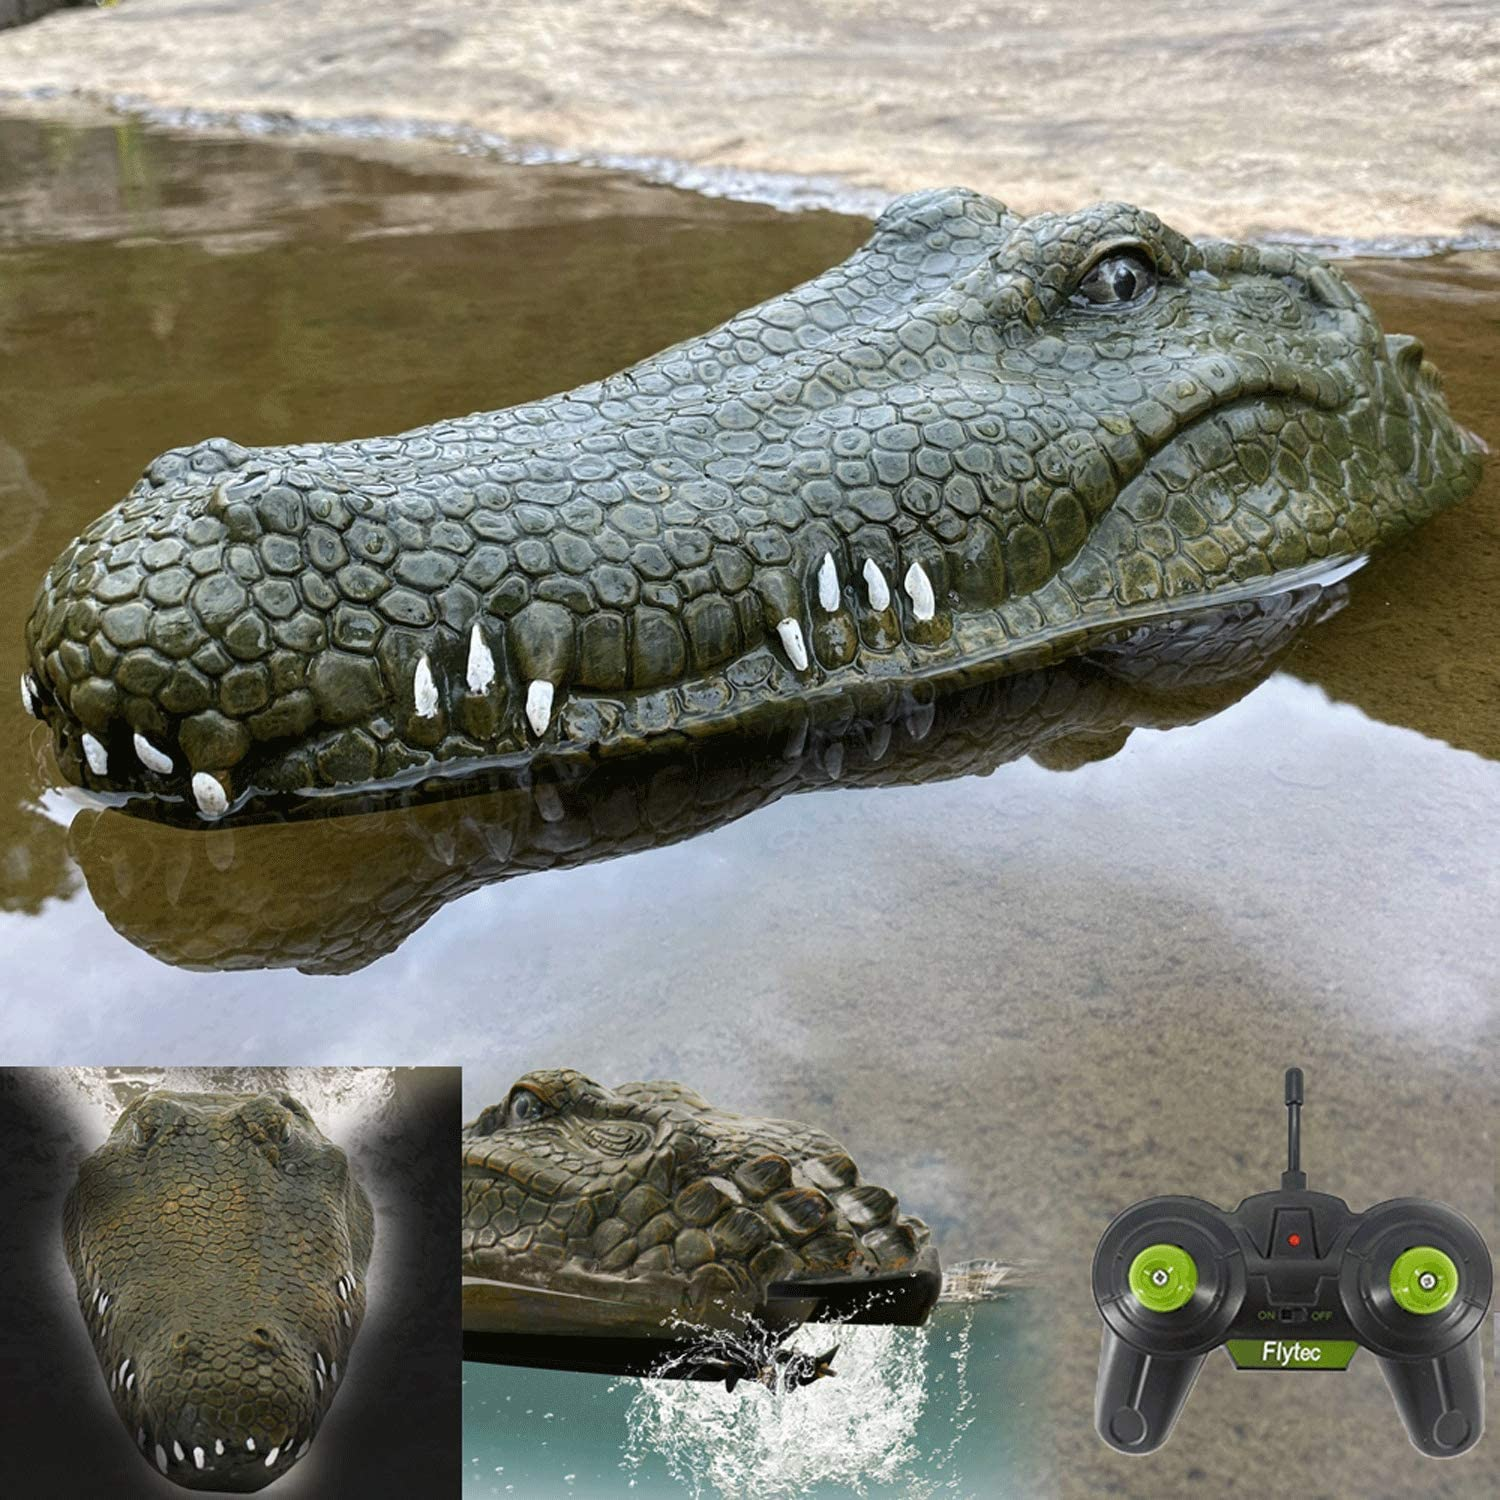 Remote Control Alligator Head Boat - Large Decoy and Floating Crocodile Head for Adults and Boys Prank Pond Toys, RC Boats for Pools and Lakes for Kids